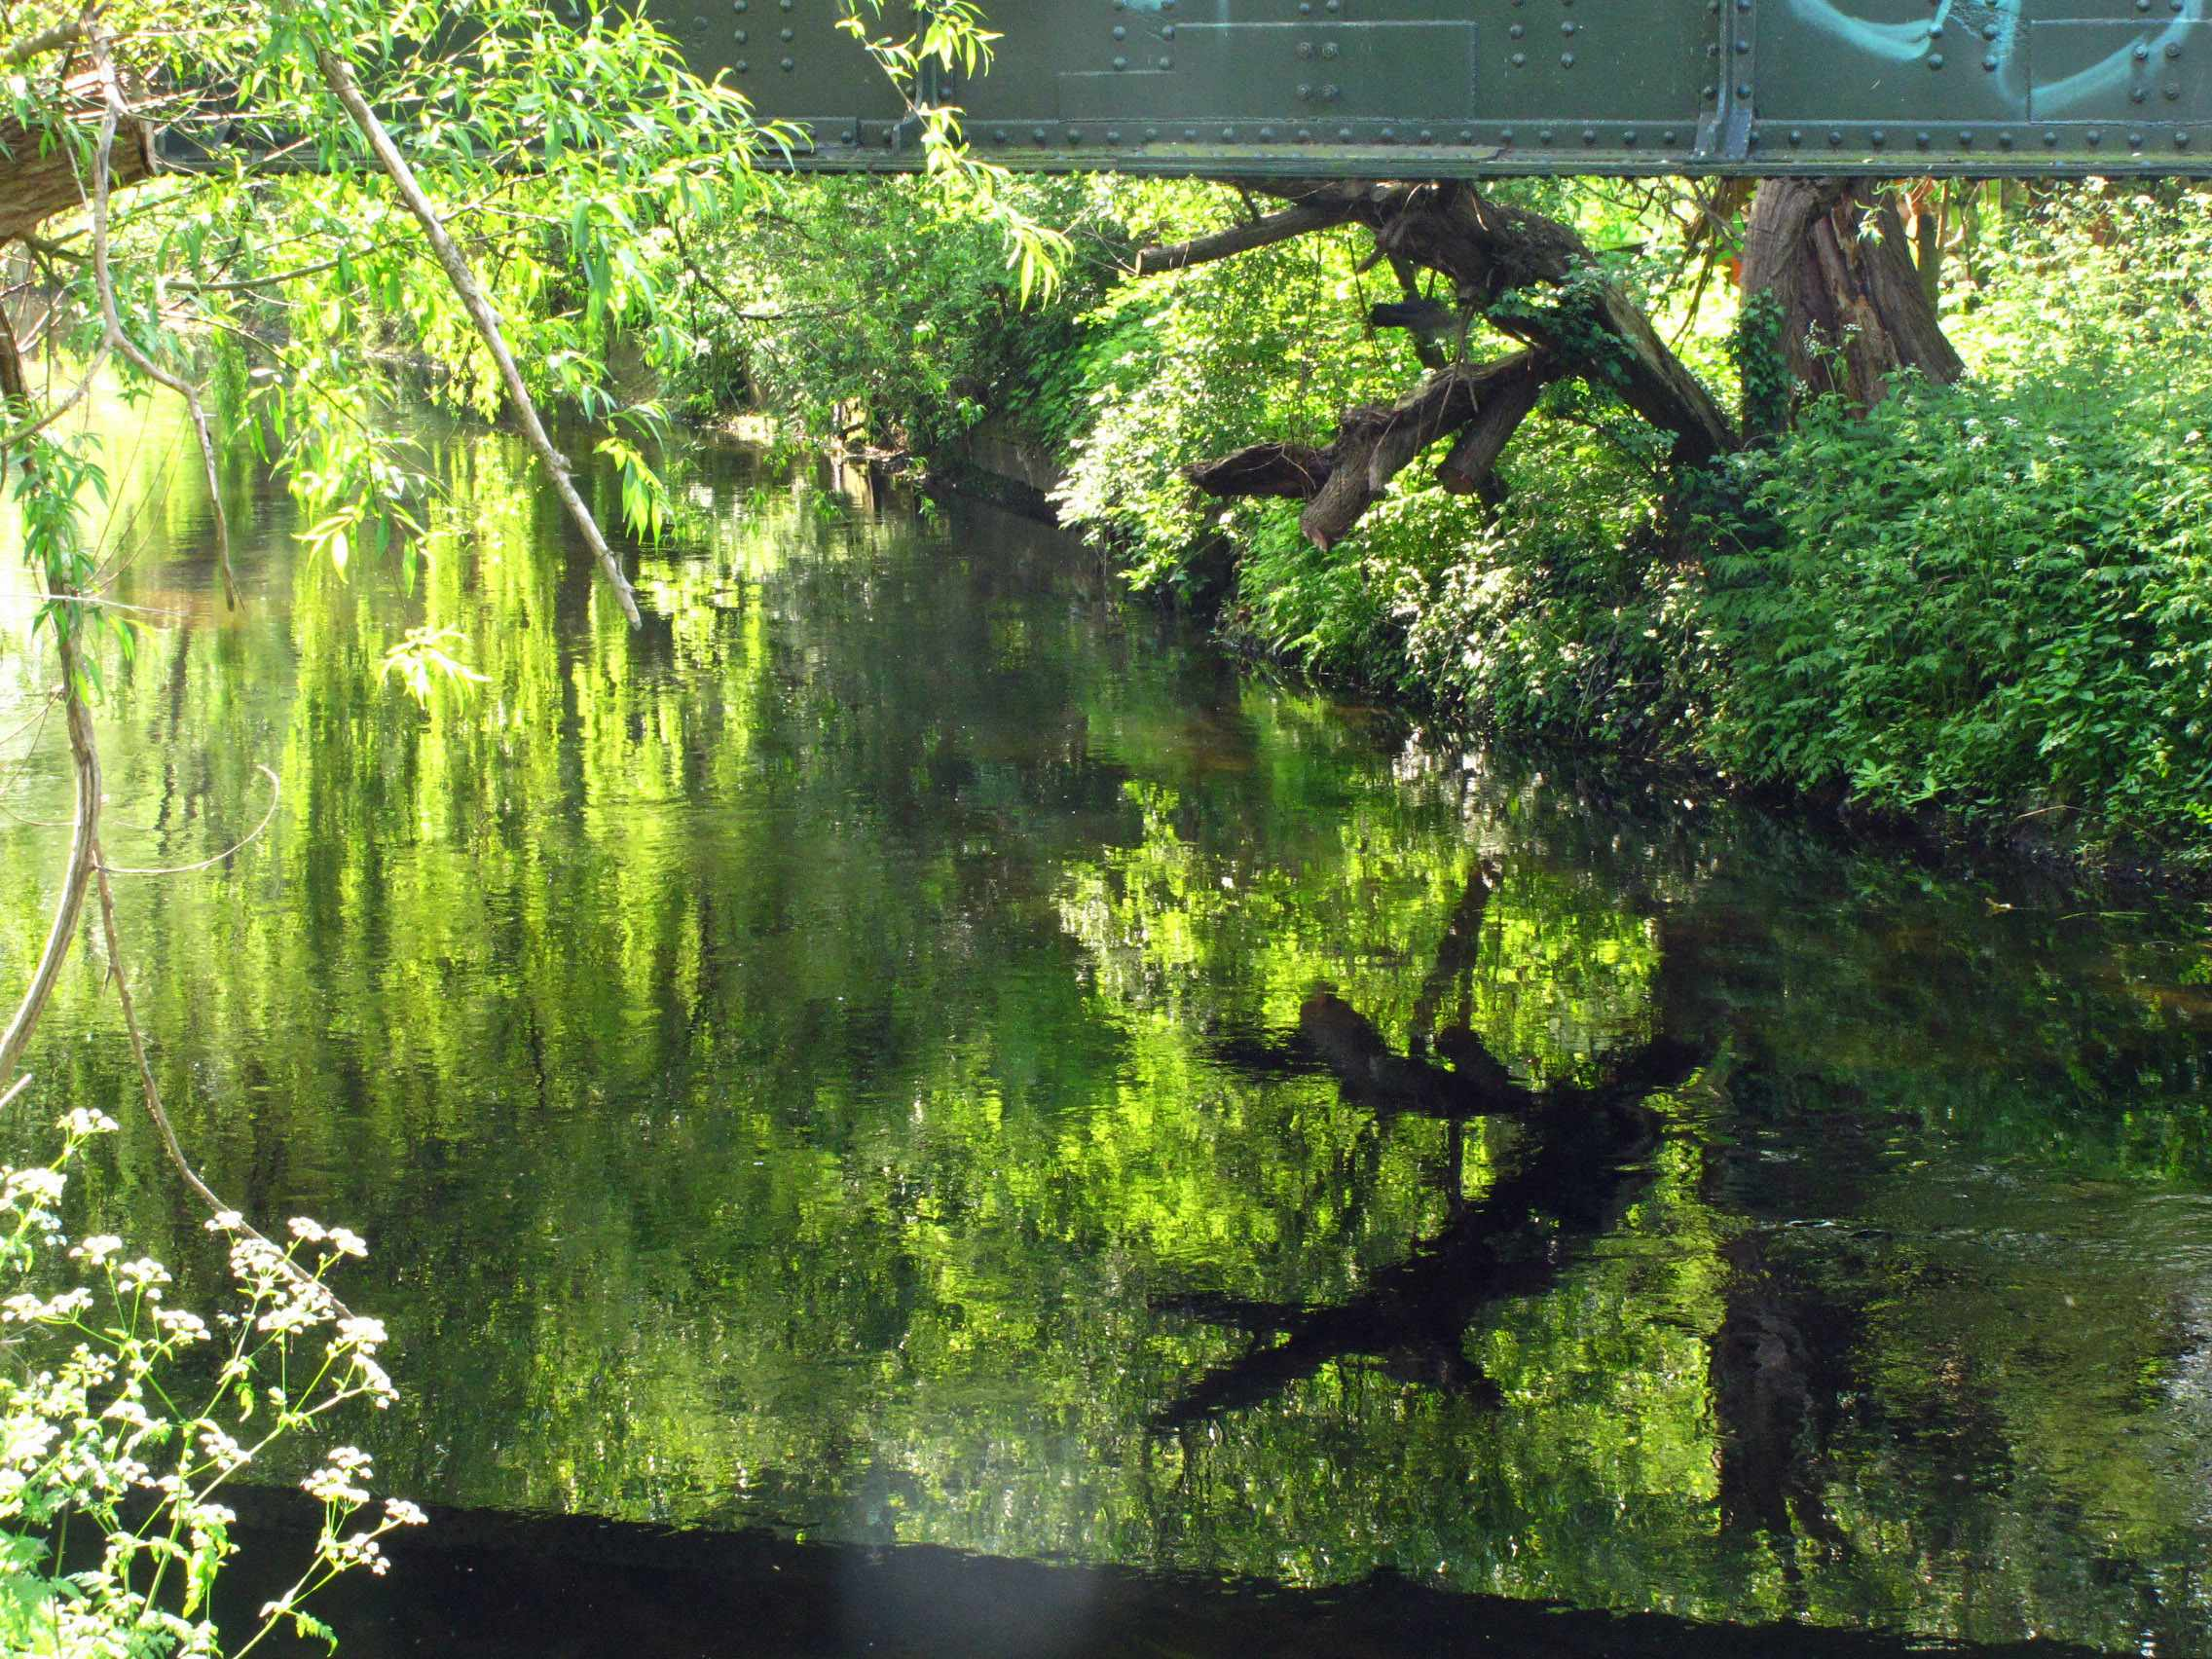 The River Wandle in Wandsworth.